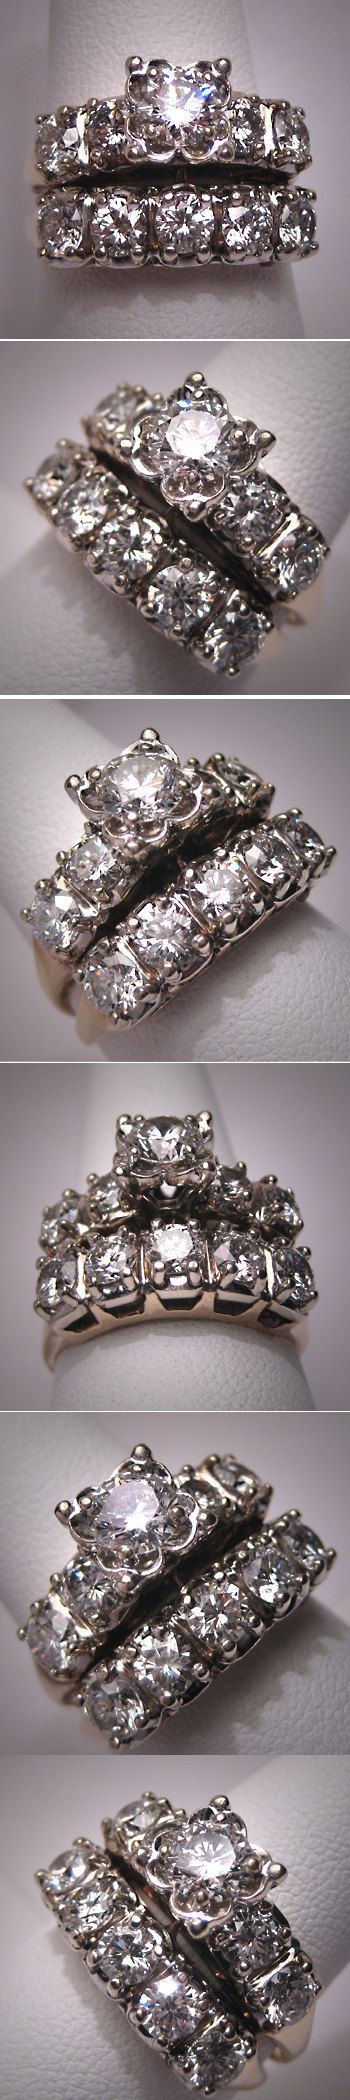 Antique Wedding Ring Set Vintage Diamond Art Deco Wt. Gold Three Carats